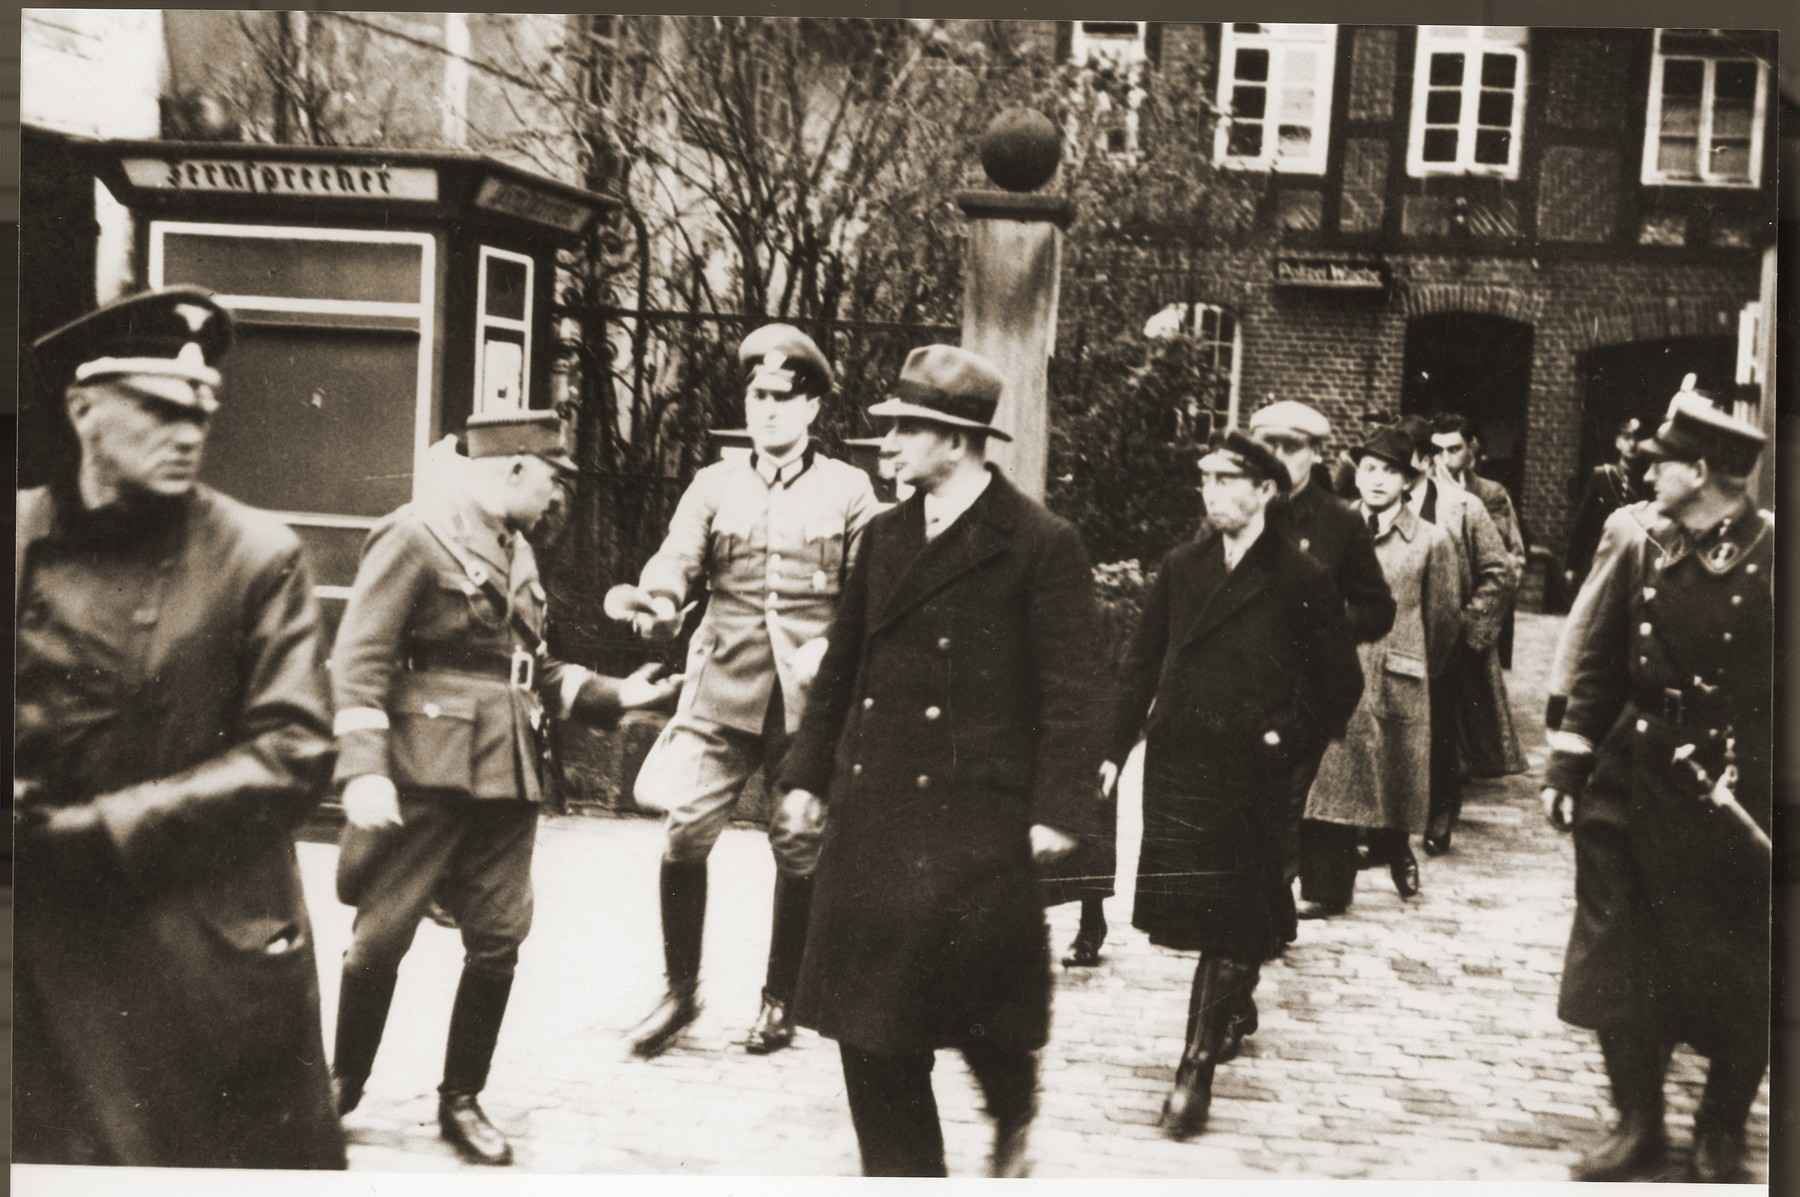 A small group of Jewish men, who have been rounded-up for arrest in the days after Kristallnacht, file out of the police station in Stadthagen, escorted by German police and SA members.